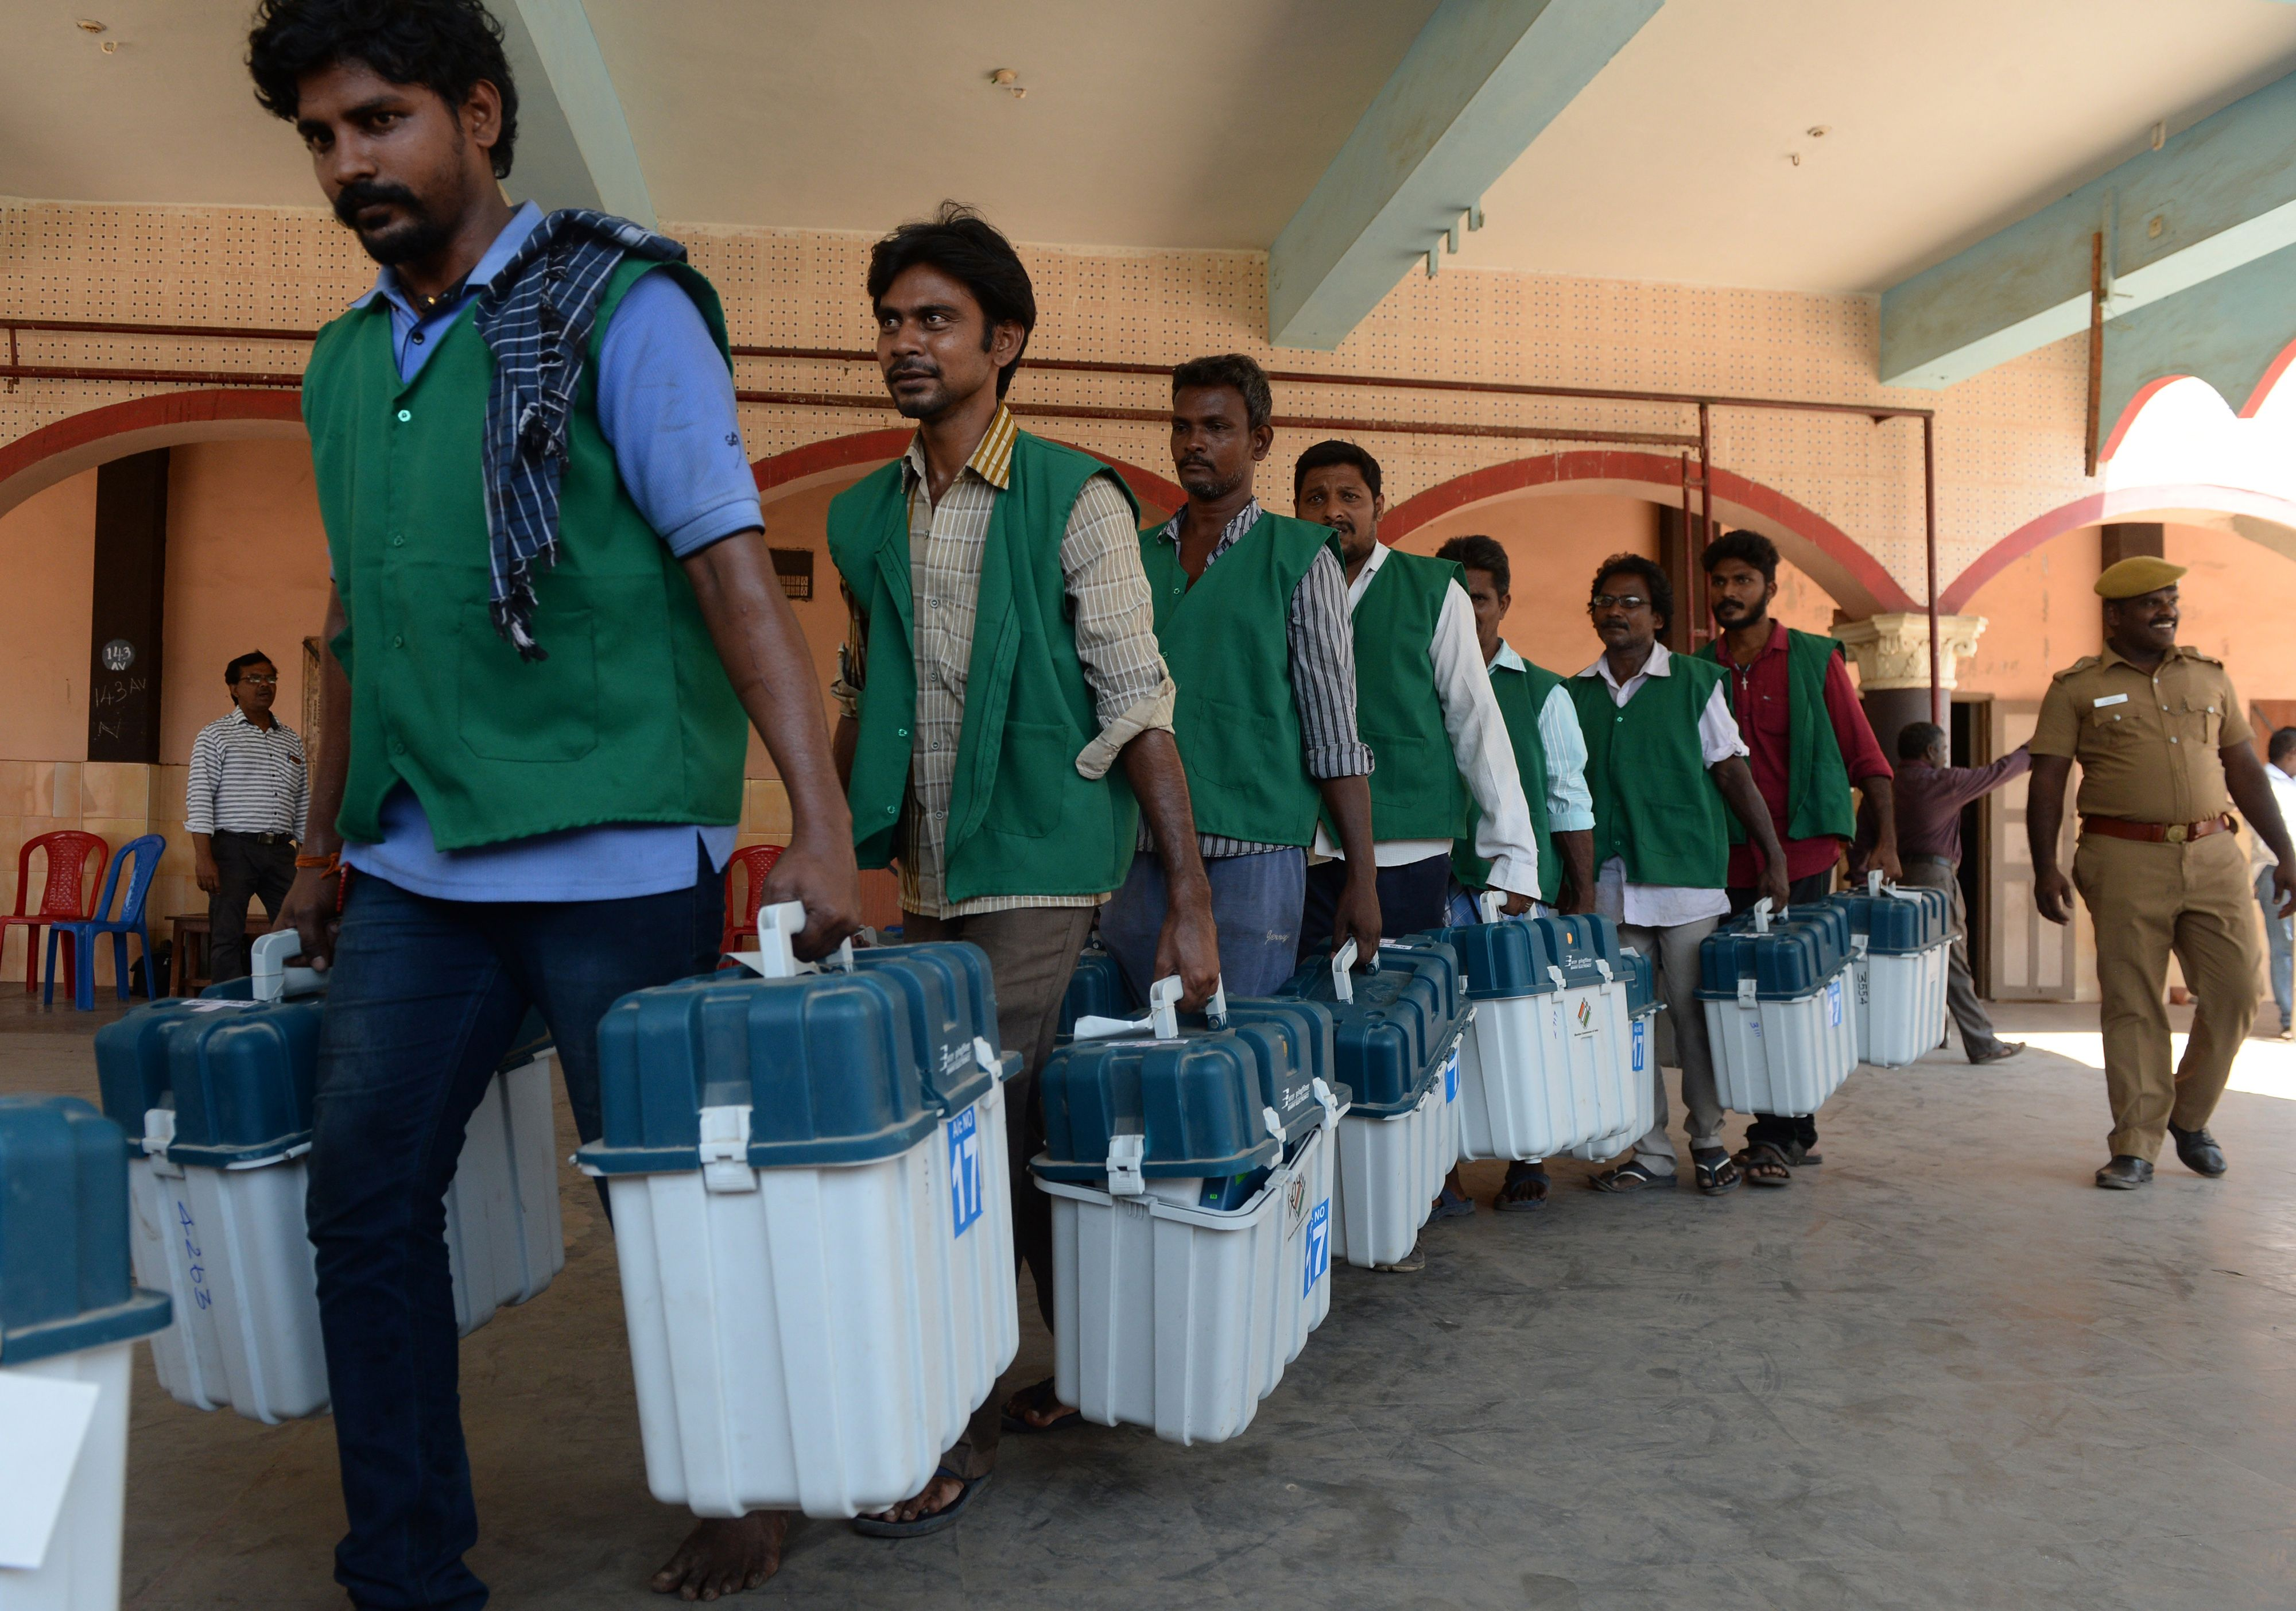 Indian election workers carry boxes containing Electronic Voting Machines at a distribution point in Chennai on April 17, 2019, ahead of the second phase of India's general election.